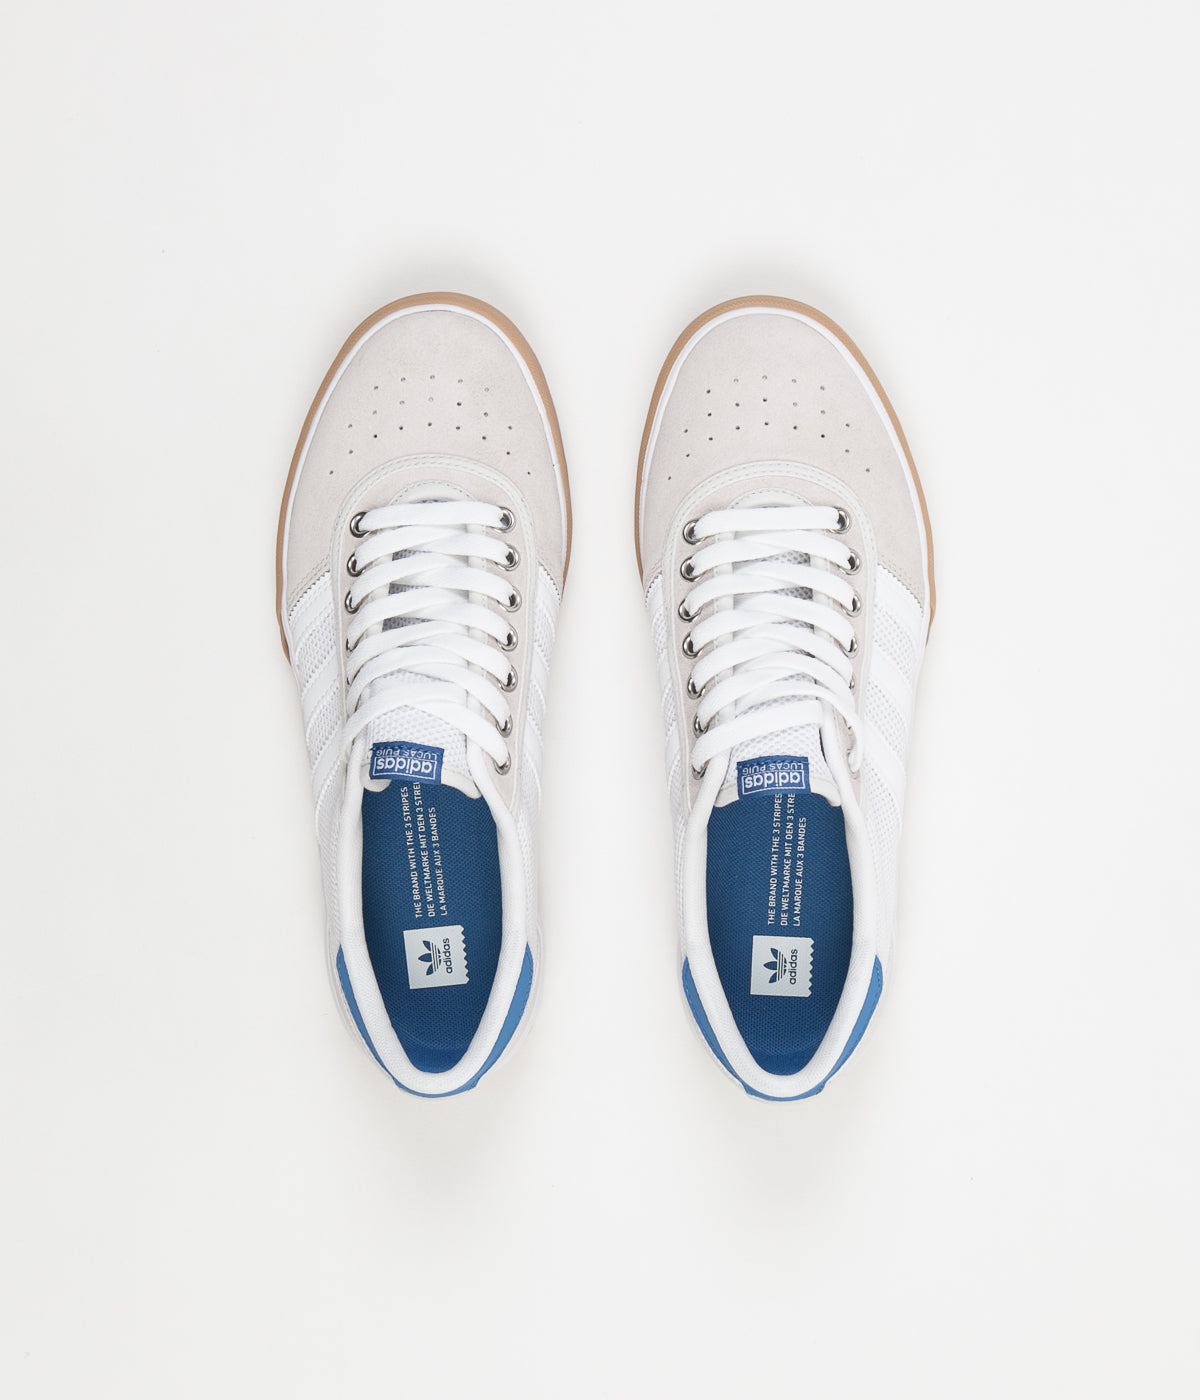 Adidas Lucas Premiere Shoes - White / Trace Royal / Gum